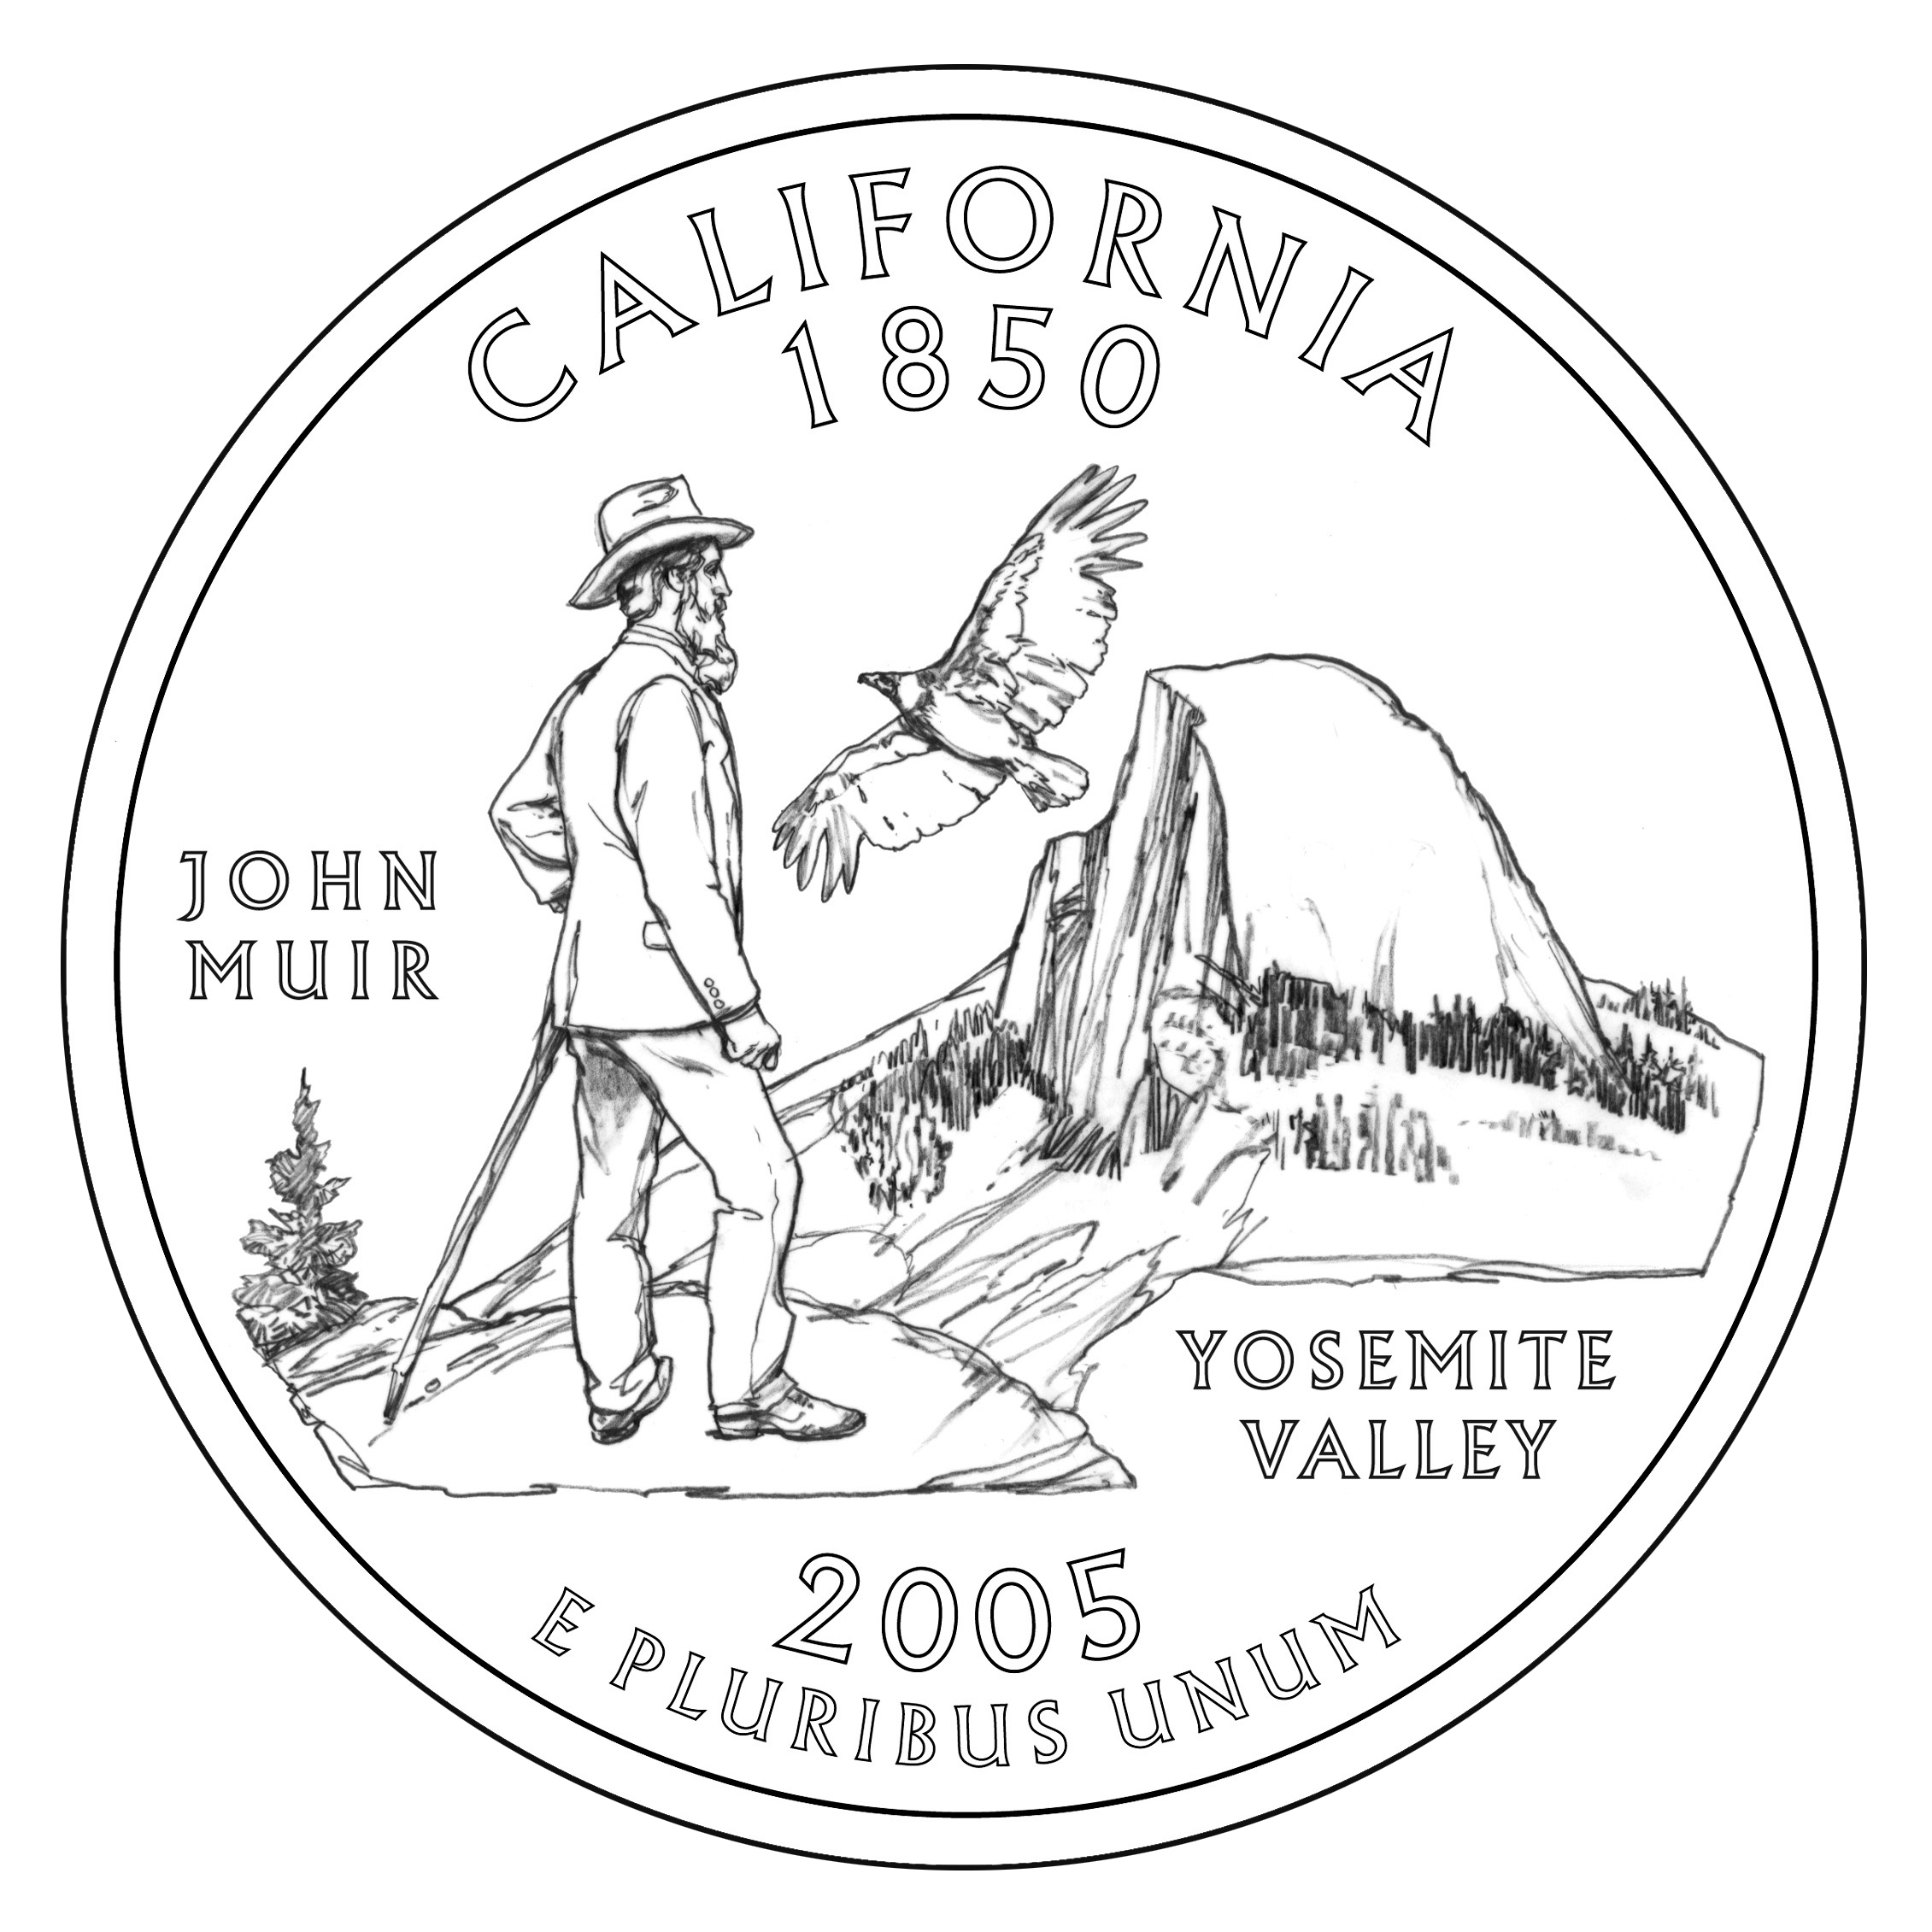 John muir yosemite california state quarter coin